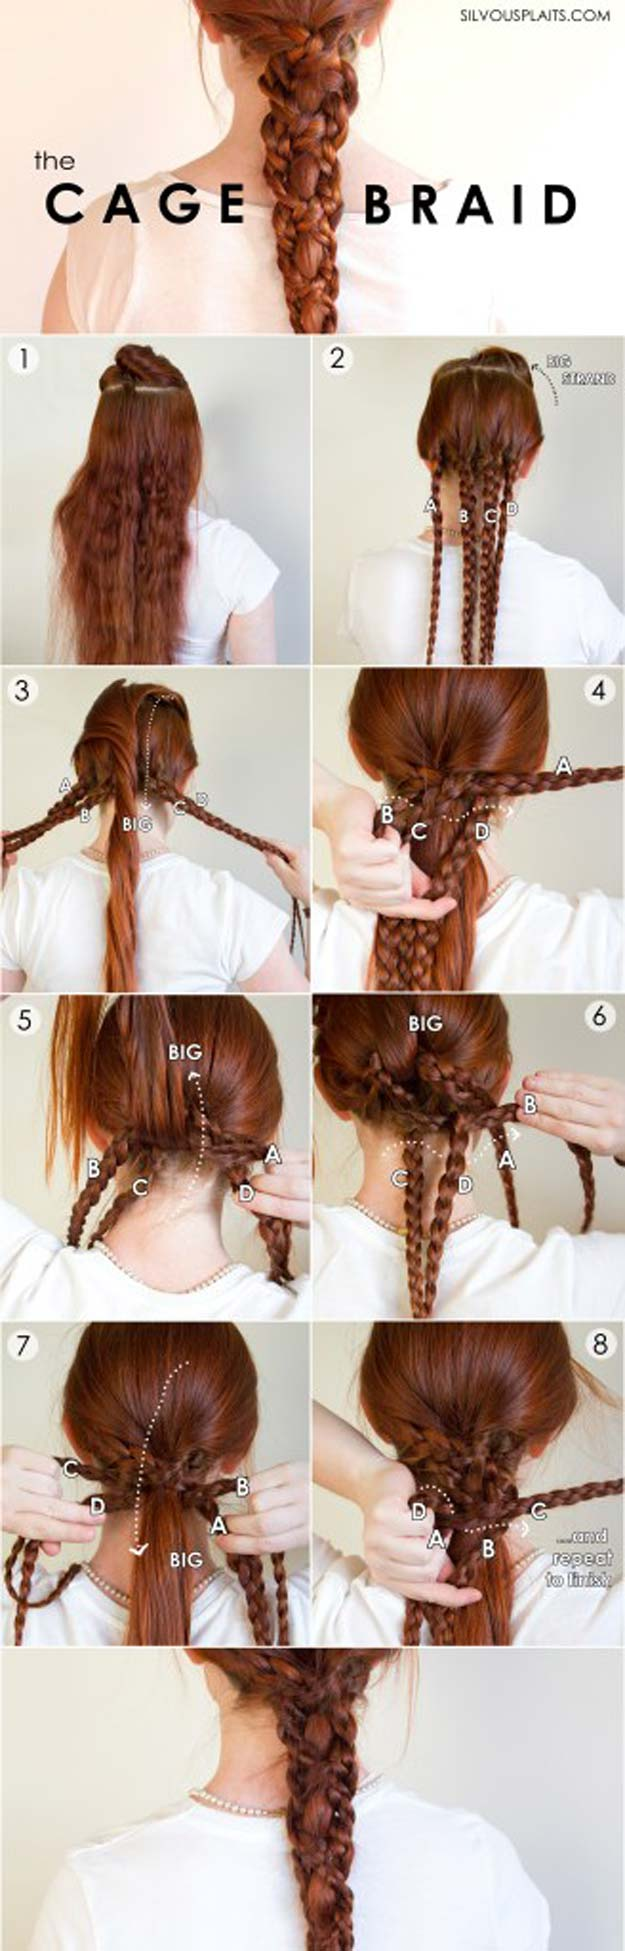 Best Hair Braiding Tutorials - Five Strand Cage Braid - Easy Step by Step Tutorials for Braids - How To Braid Fishtail, French Braids, Flower Crown, Side Braids, Cornrows, Updos - Cool Braided Hairstyles for Girls, Teens and Women - School, Day and Evening, Boho, Casual and Formal Looks #hairstyles #braiding #braidingtutorials #diyhair